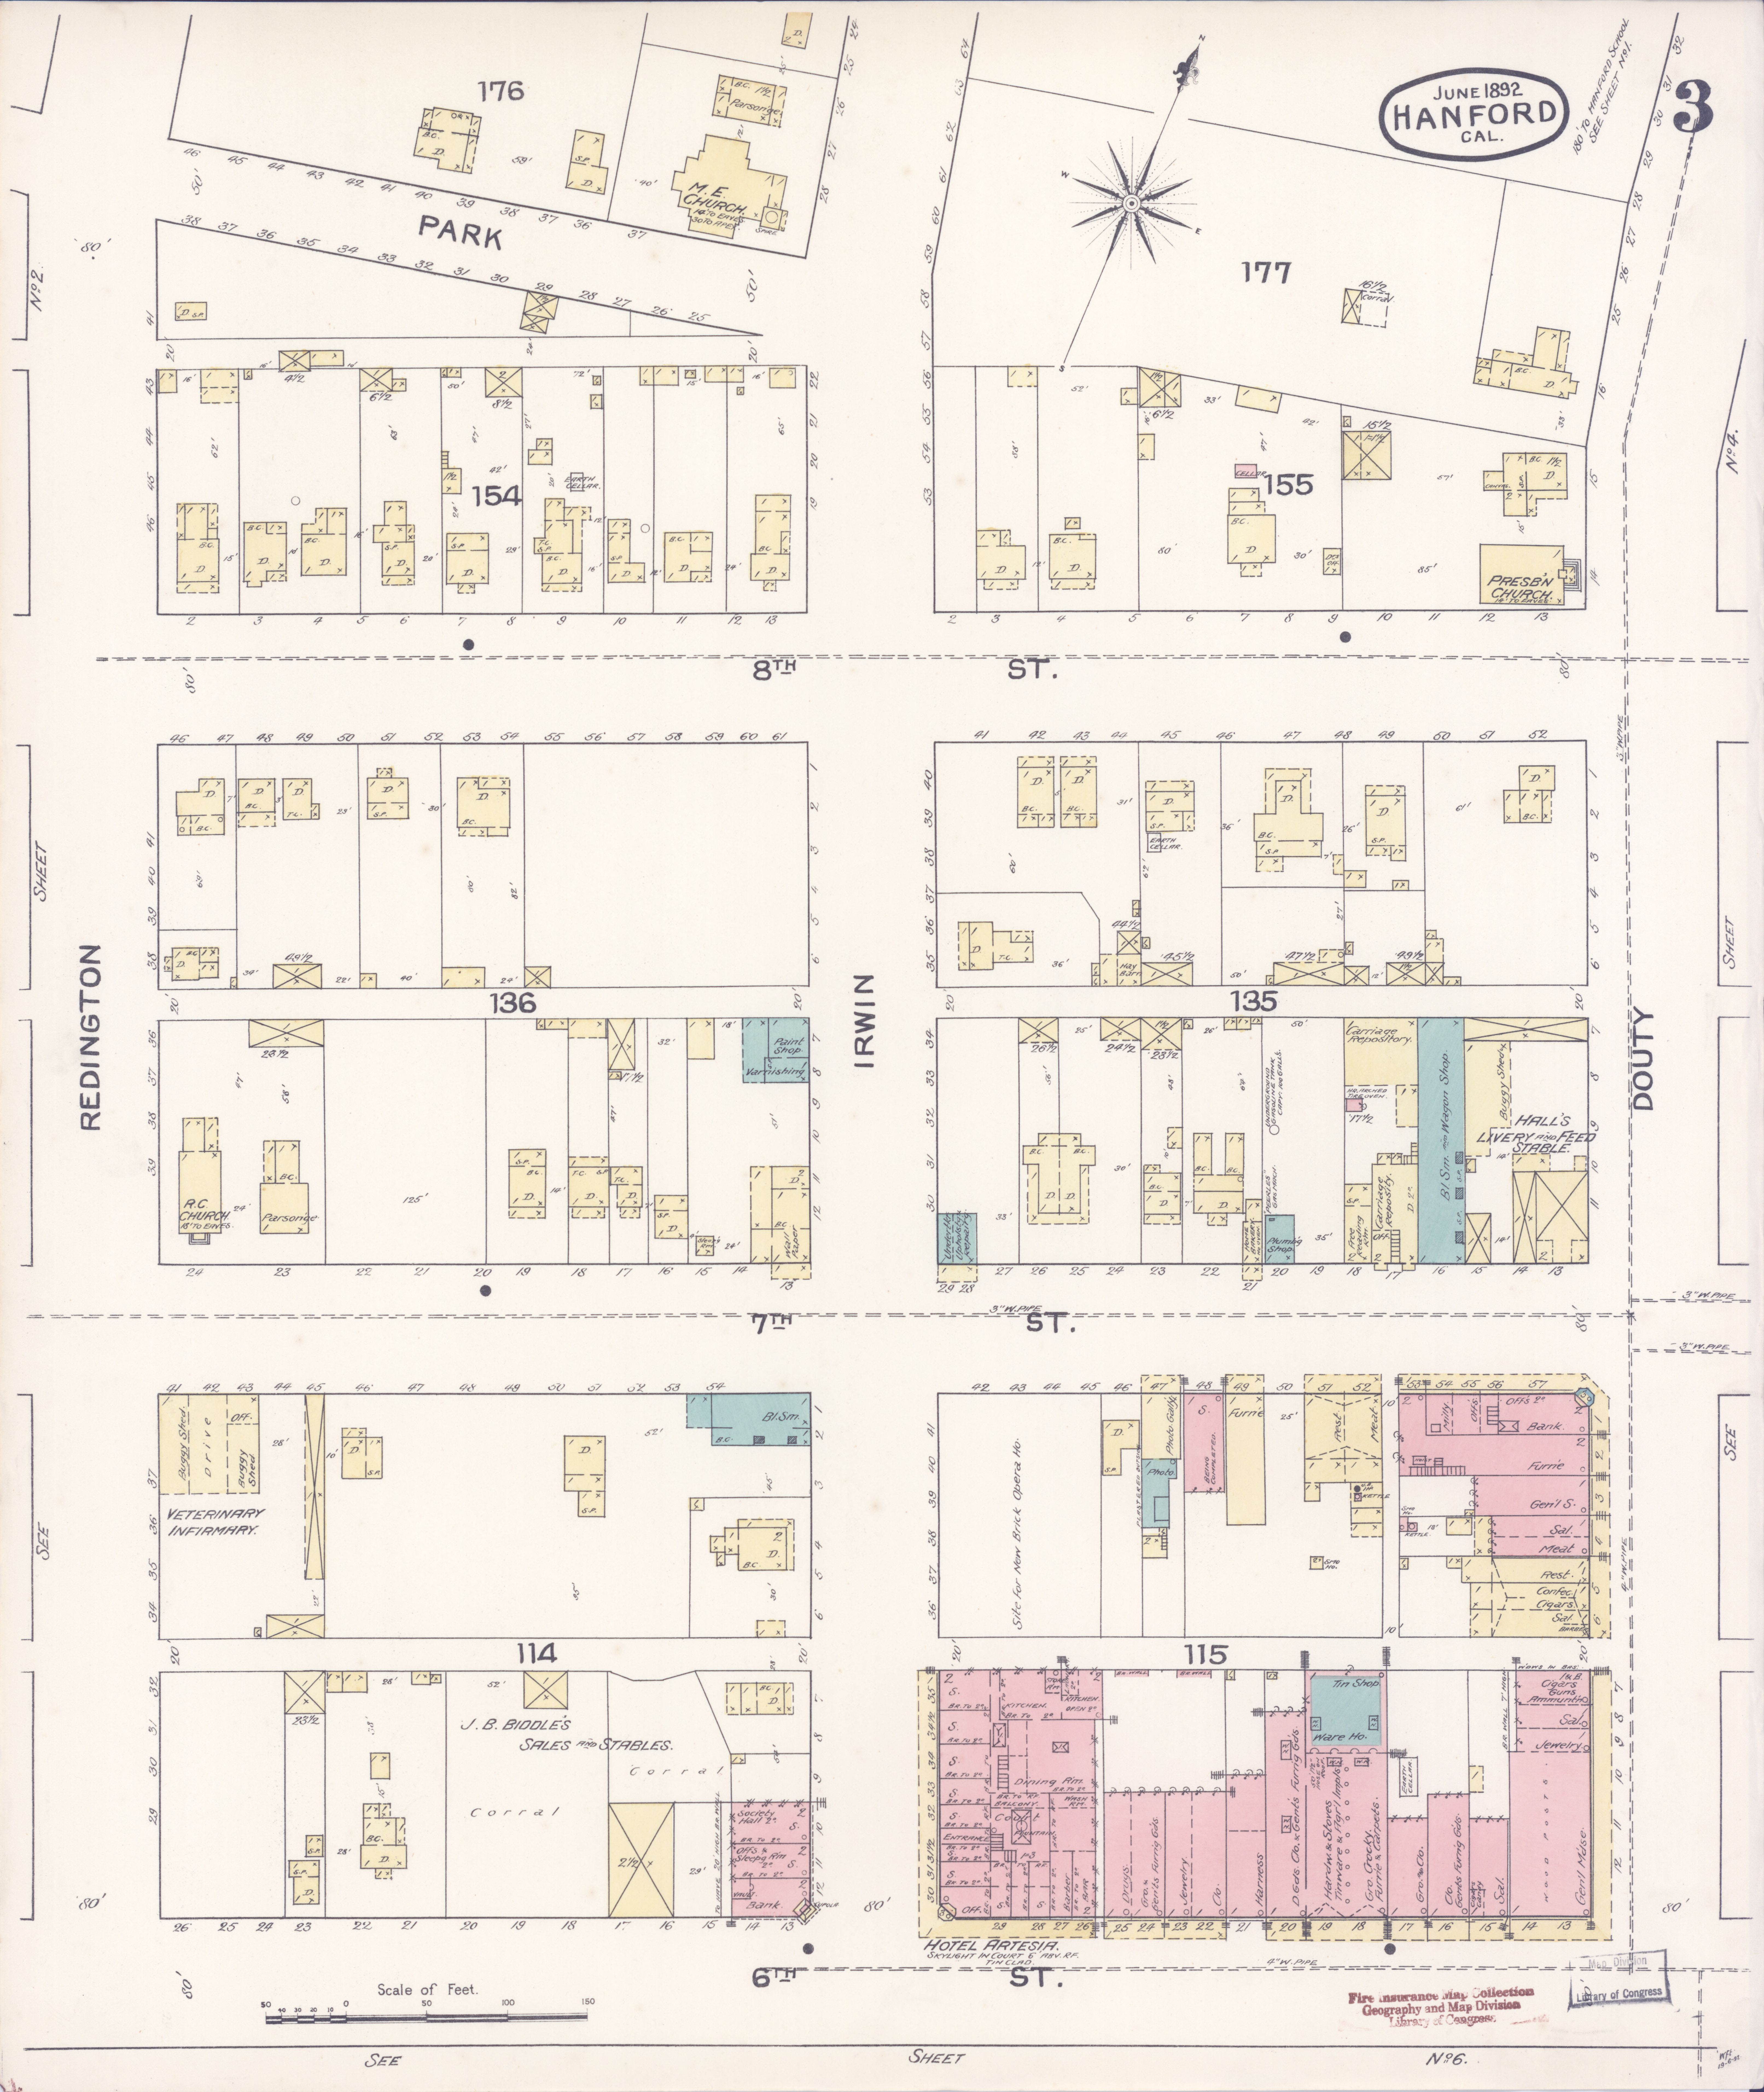 Kings County California Map.File Sanborn Fire Insurance Map From Hanford Kings County